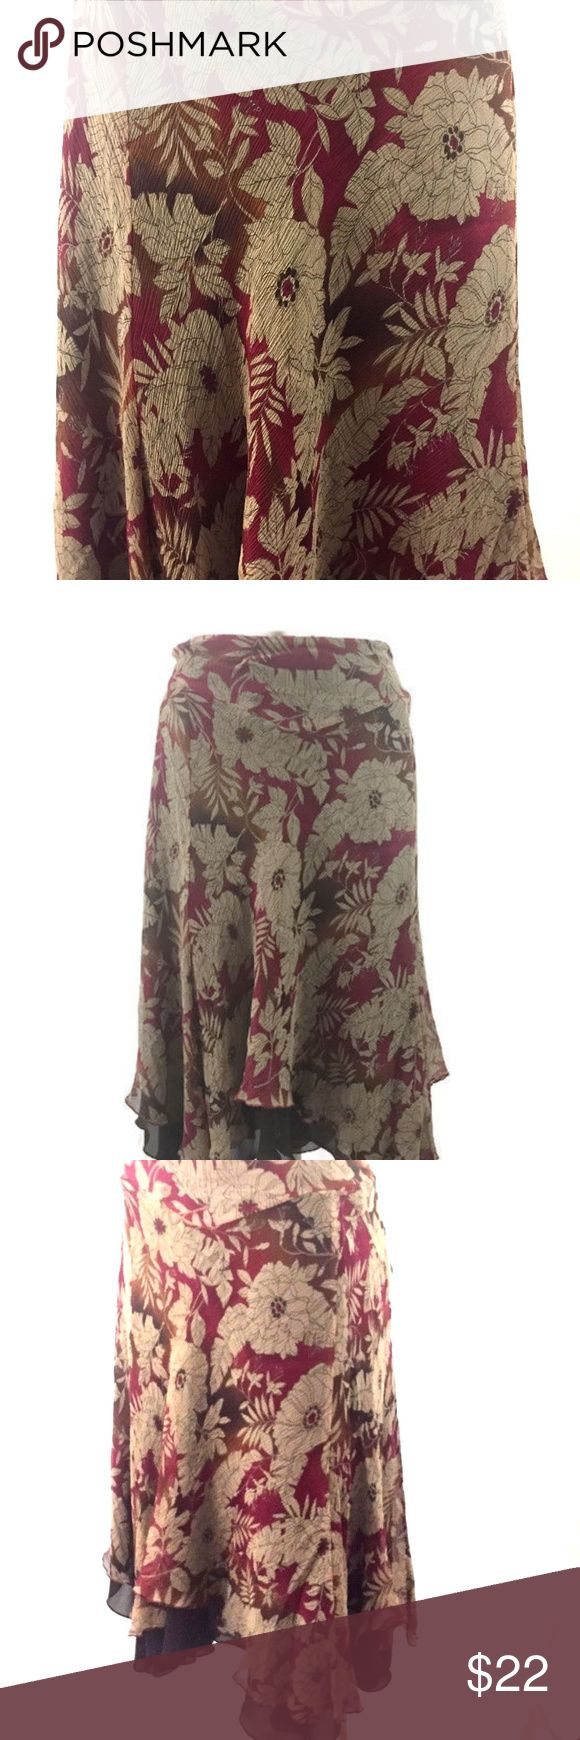 Floral Silk Multi Layer Midi Skirt Nine West Red & Tan Silk Floral Multi-Layer Scarf Hemline Maxi Skirt      Size 18W     Red & Tan Floral Print with a Brown Silk Under Layer      Side Zip Closure  Approximate Measurements:     Waist: 38 Inches     Length: 27 Inches (Front)     Length from Longest Point 32.5 Inches (Side) Nine West Skirts Midi